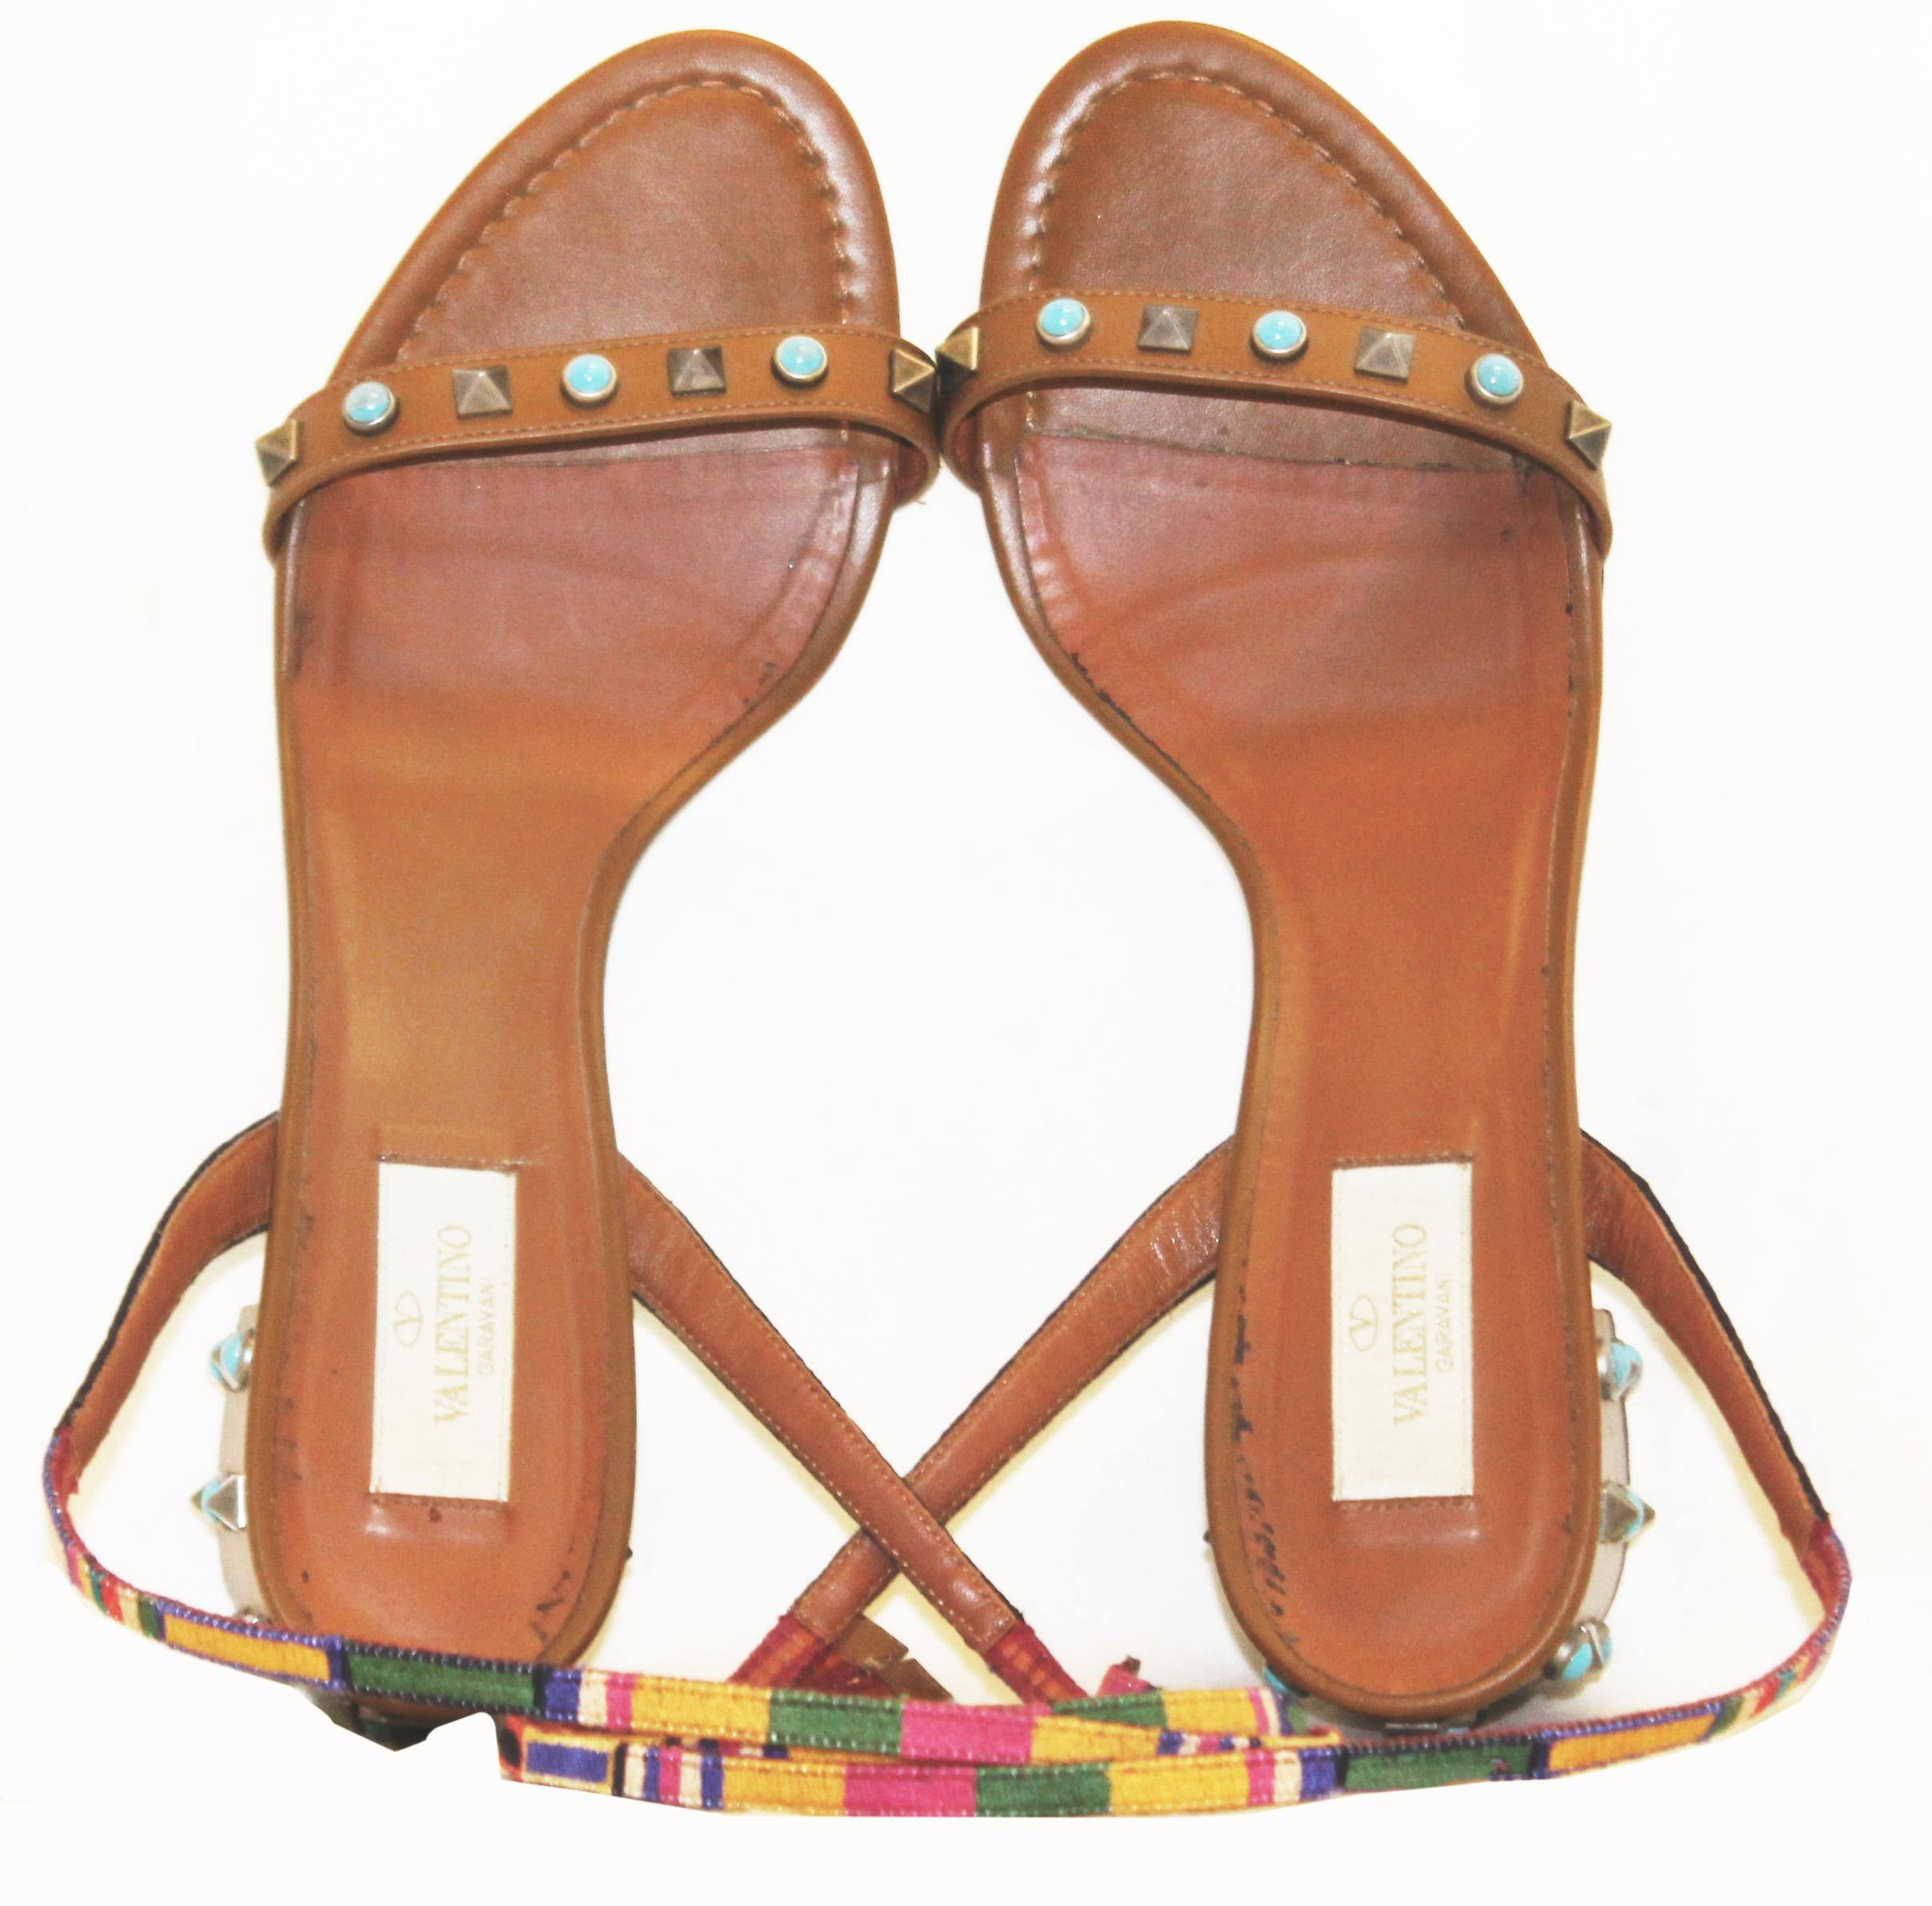 09a4502f83 Valentino Tan Chunky Heel with Rock Studs and Faux Turquoise Round Studs  Shoes For Sale at 1stdibs